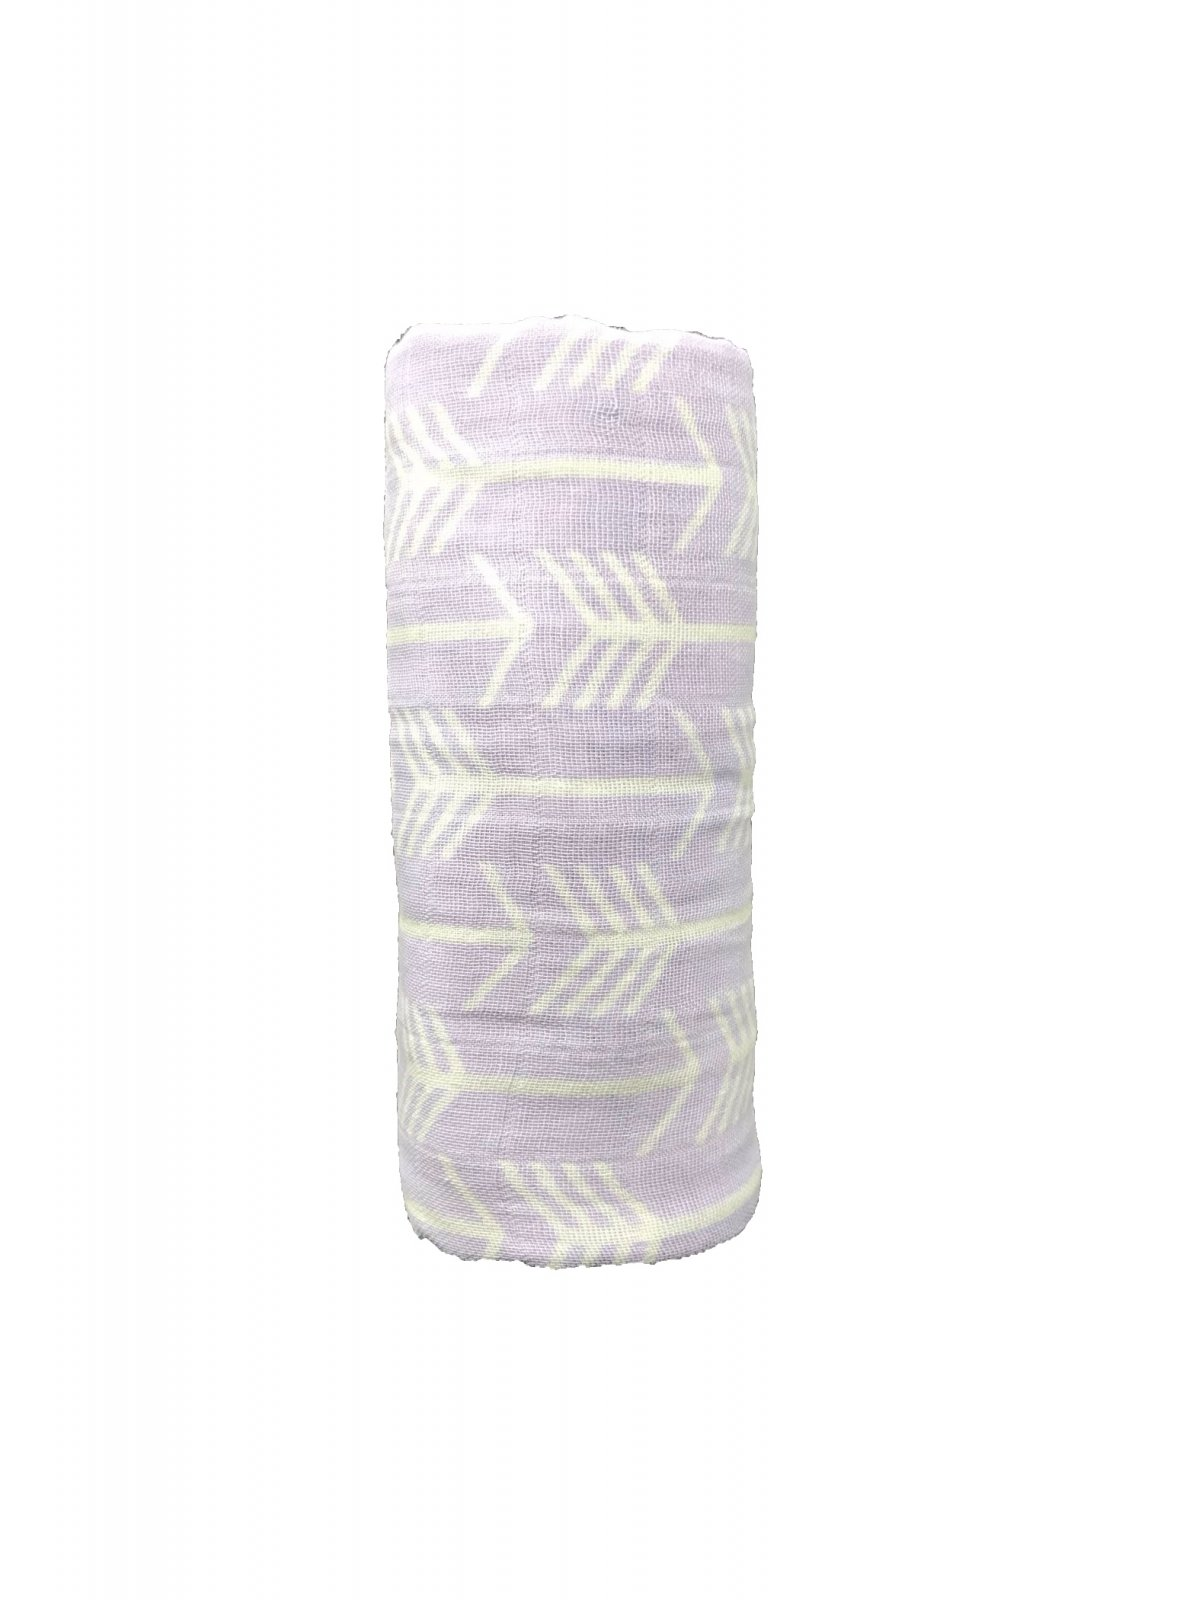 Lilac Arrows Swaddle